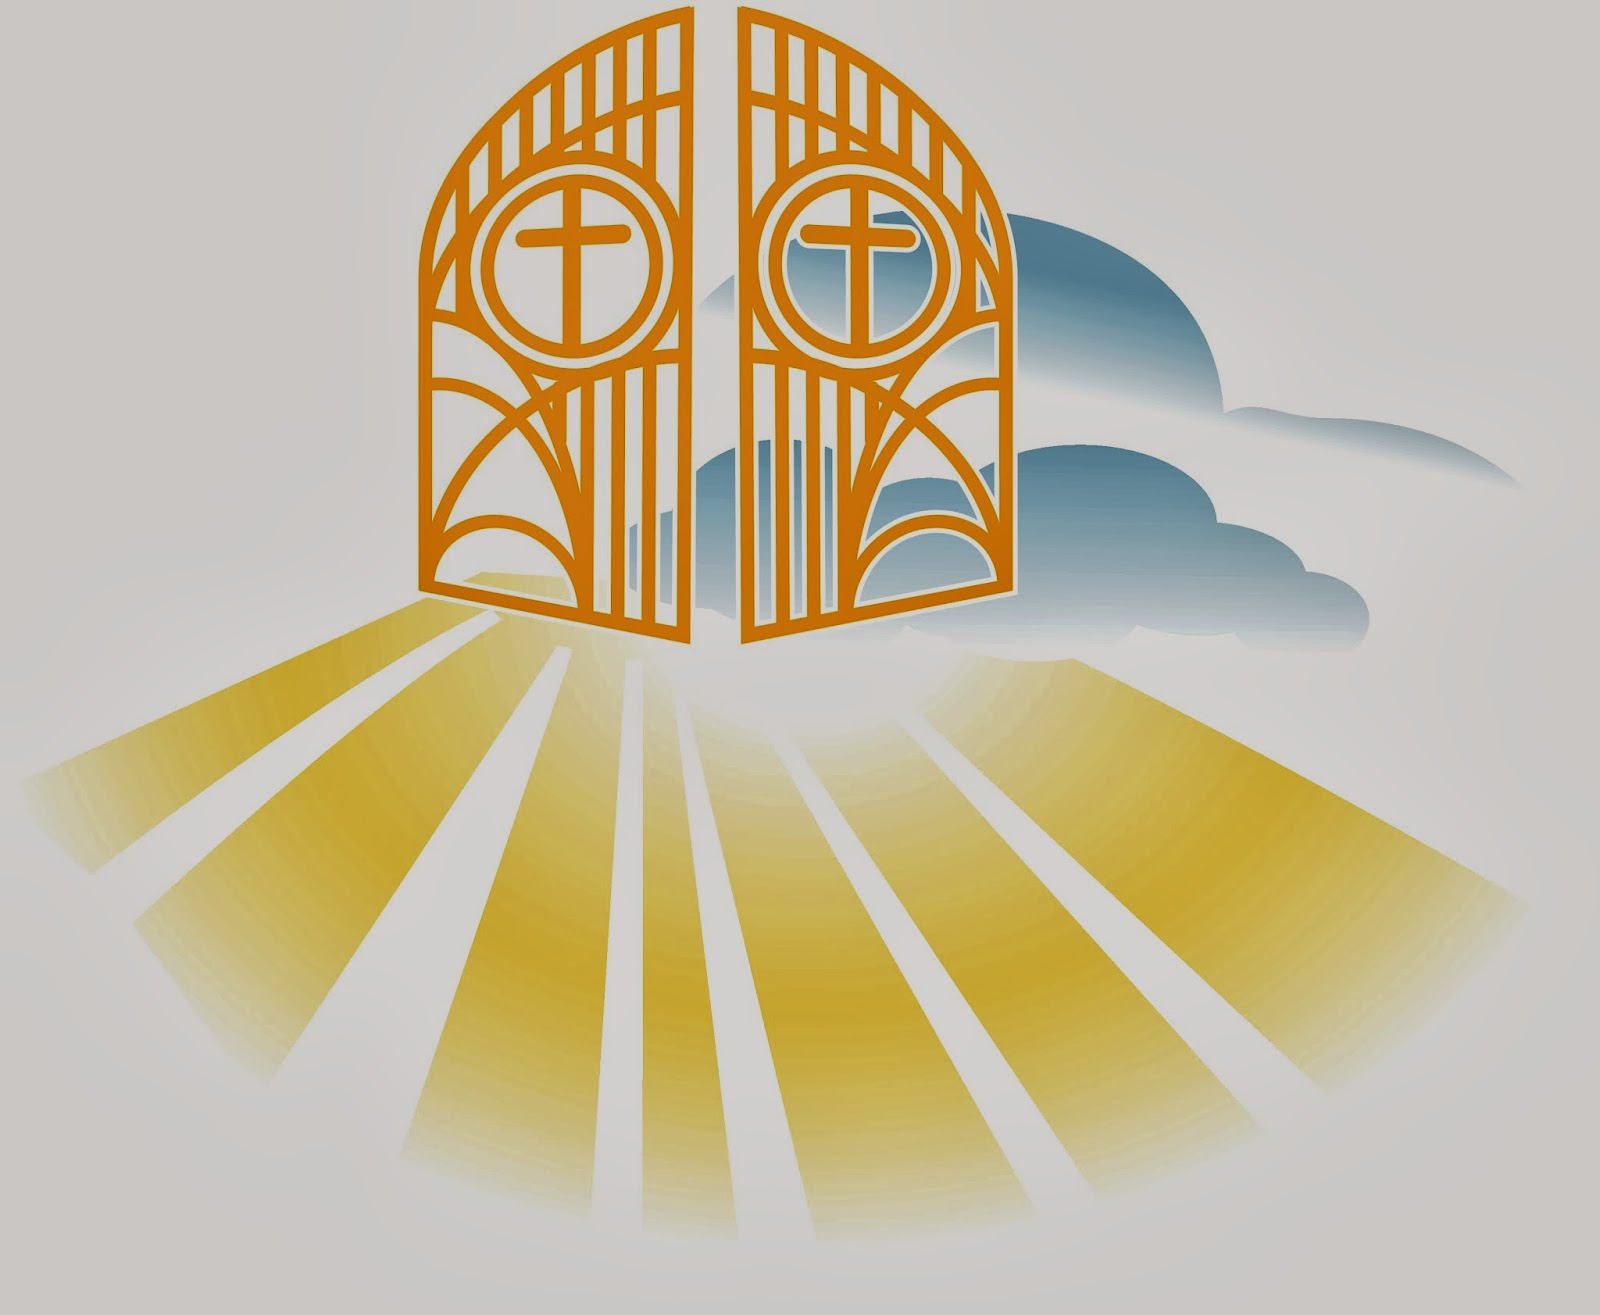 hight resolution of heaven pearly gates s clipart